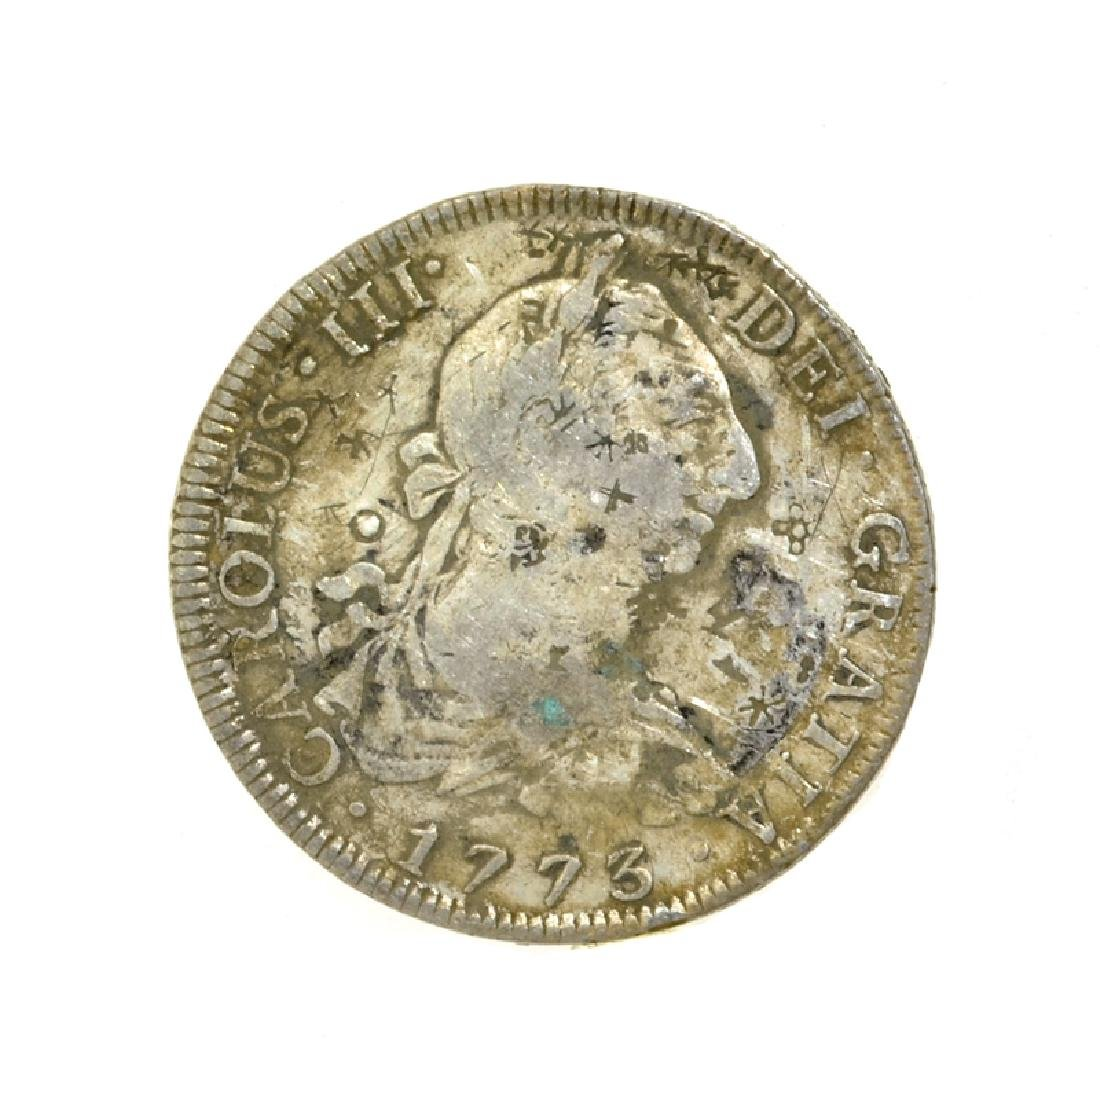 1773 Extremely Rare Eight Reales American First Silver